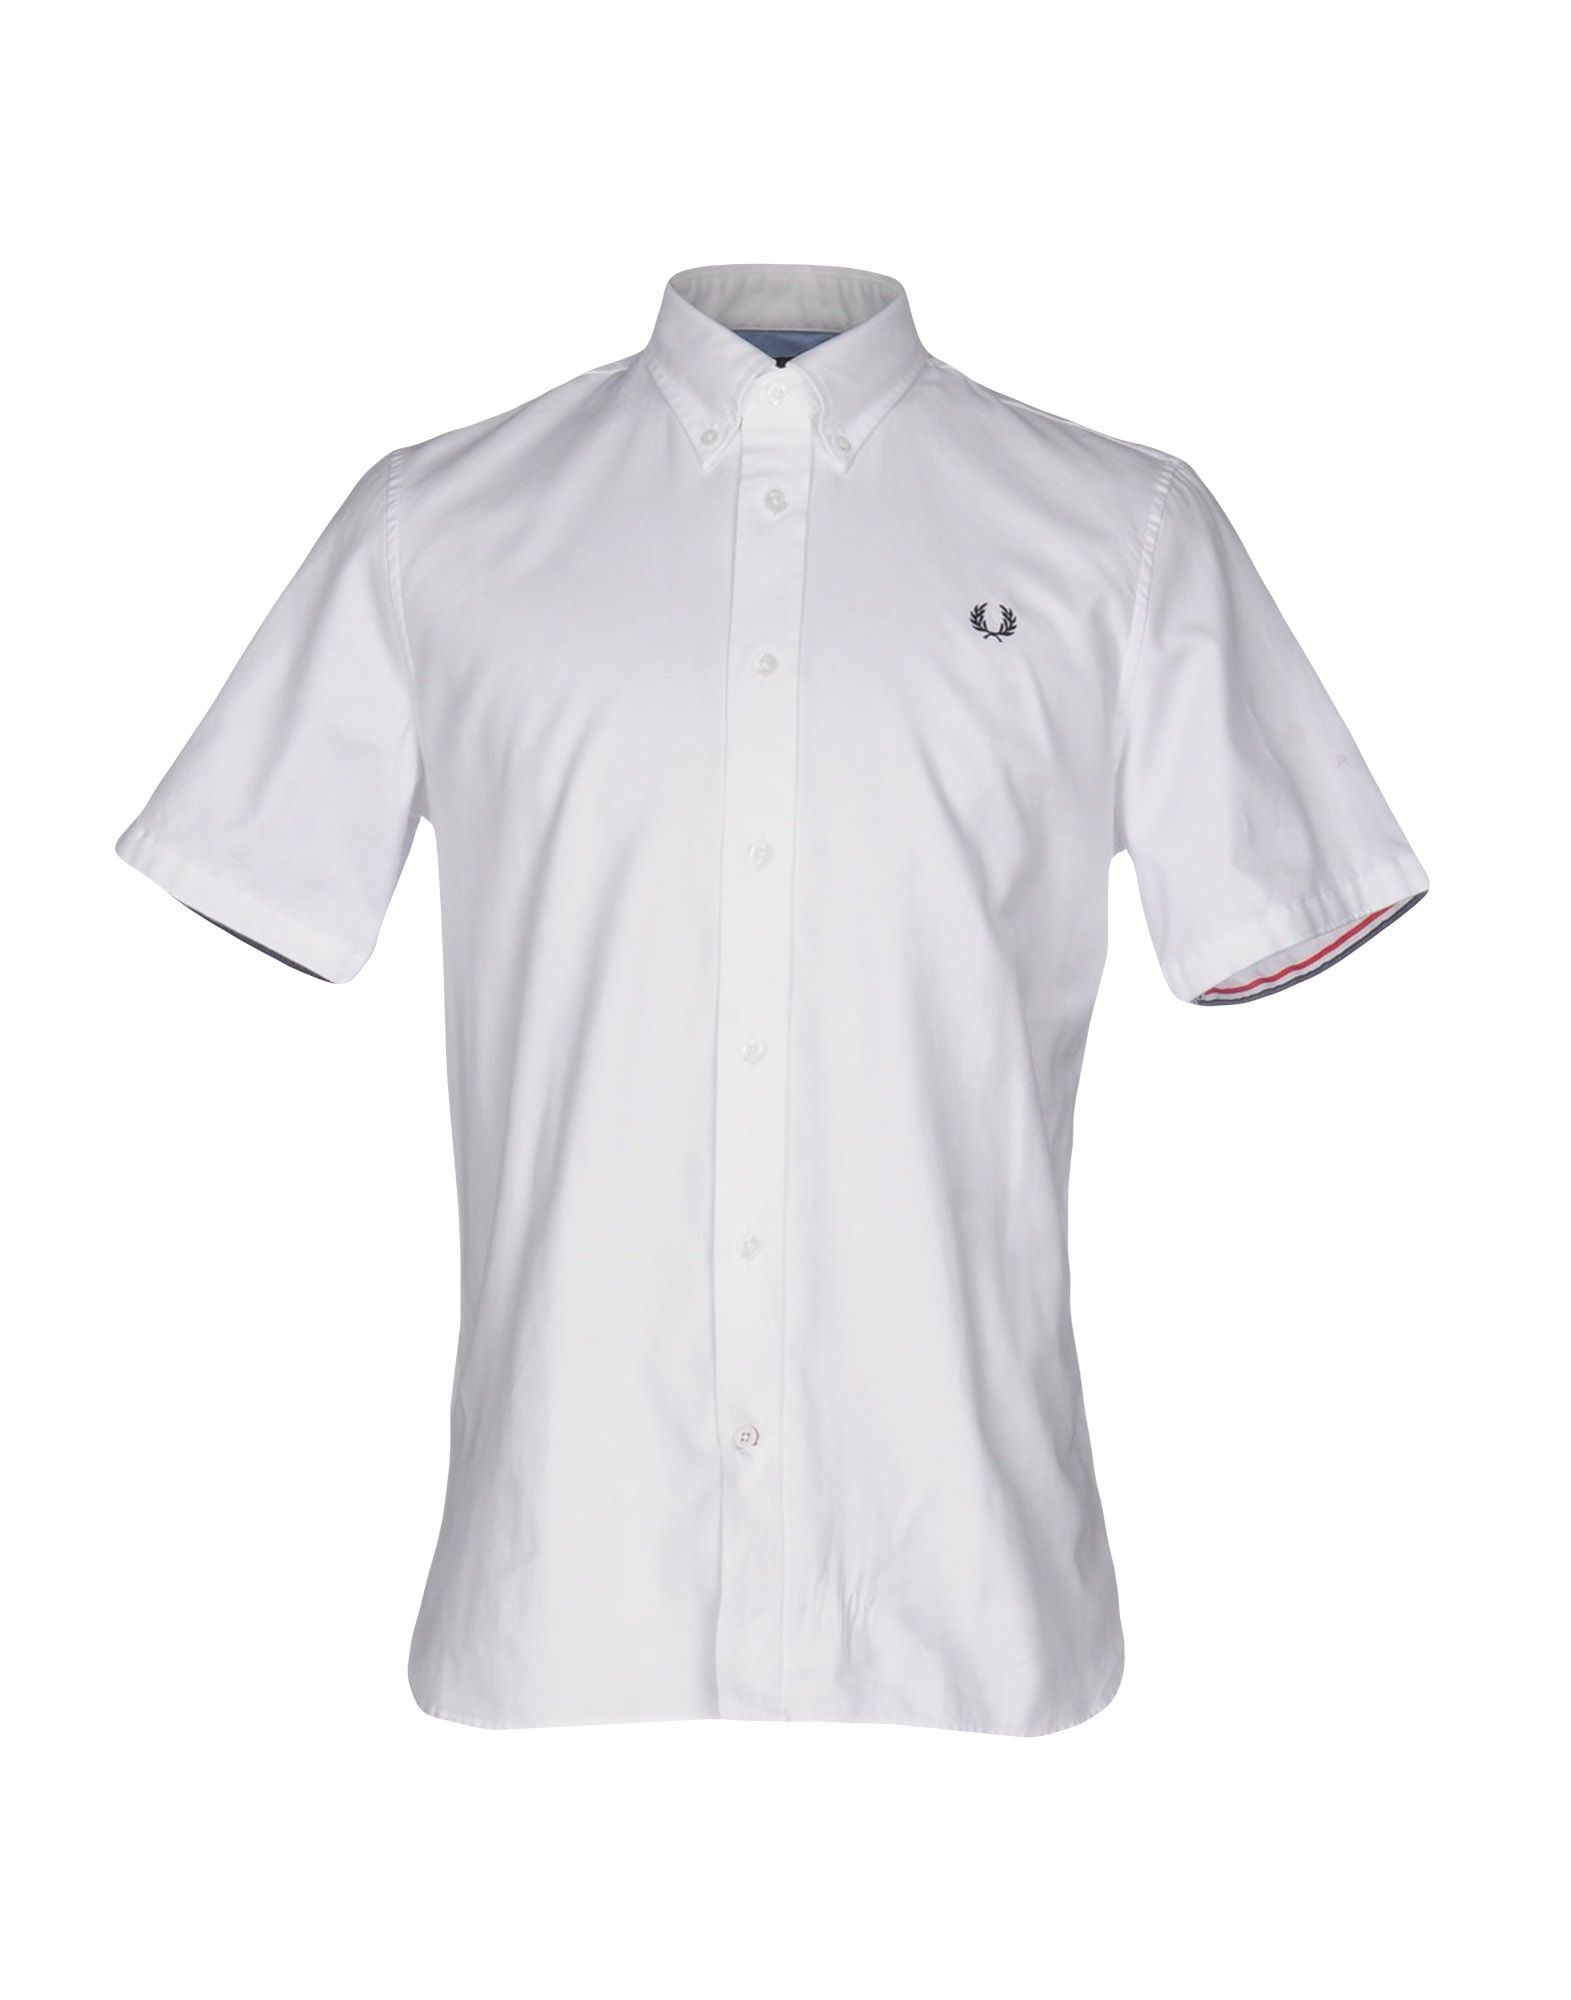 FRED PERRY Pубашка рубашка мужская fred perry 65 incoool 15